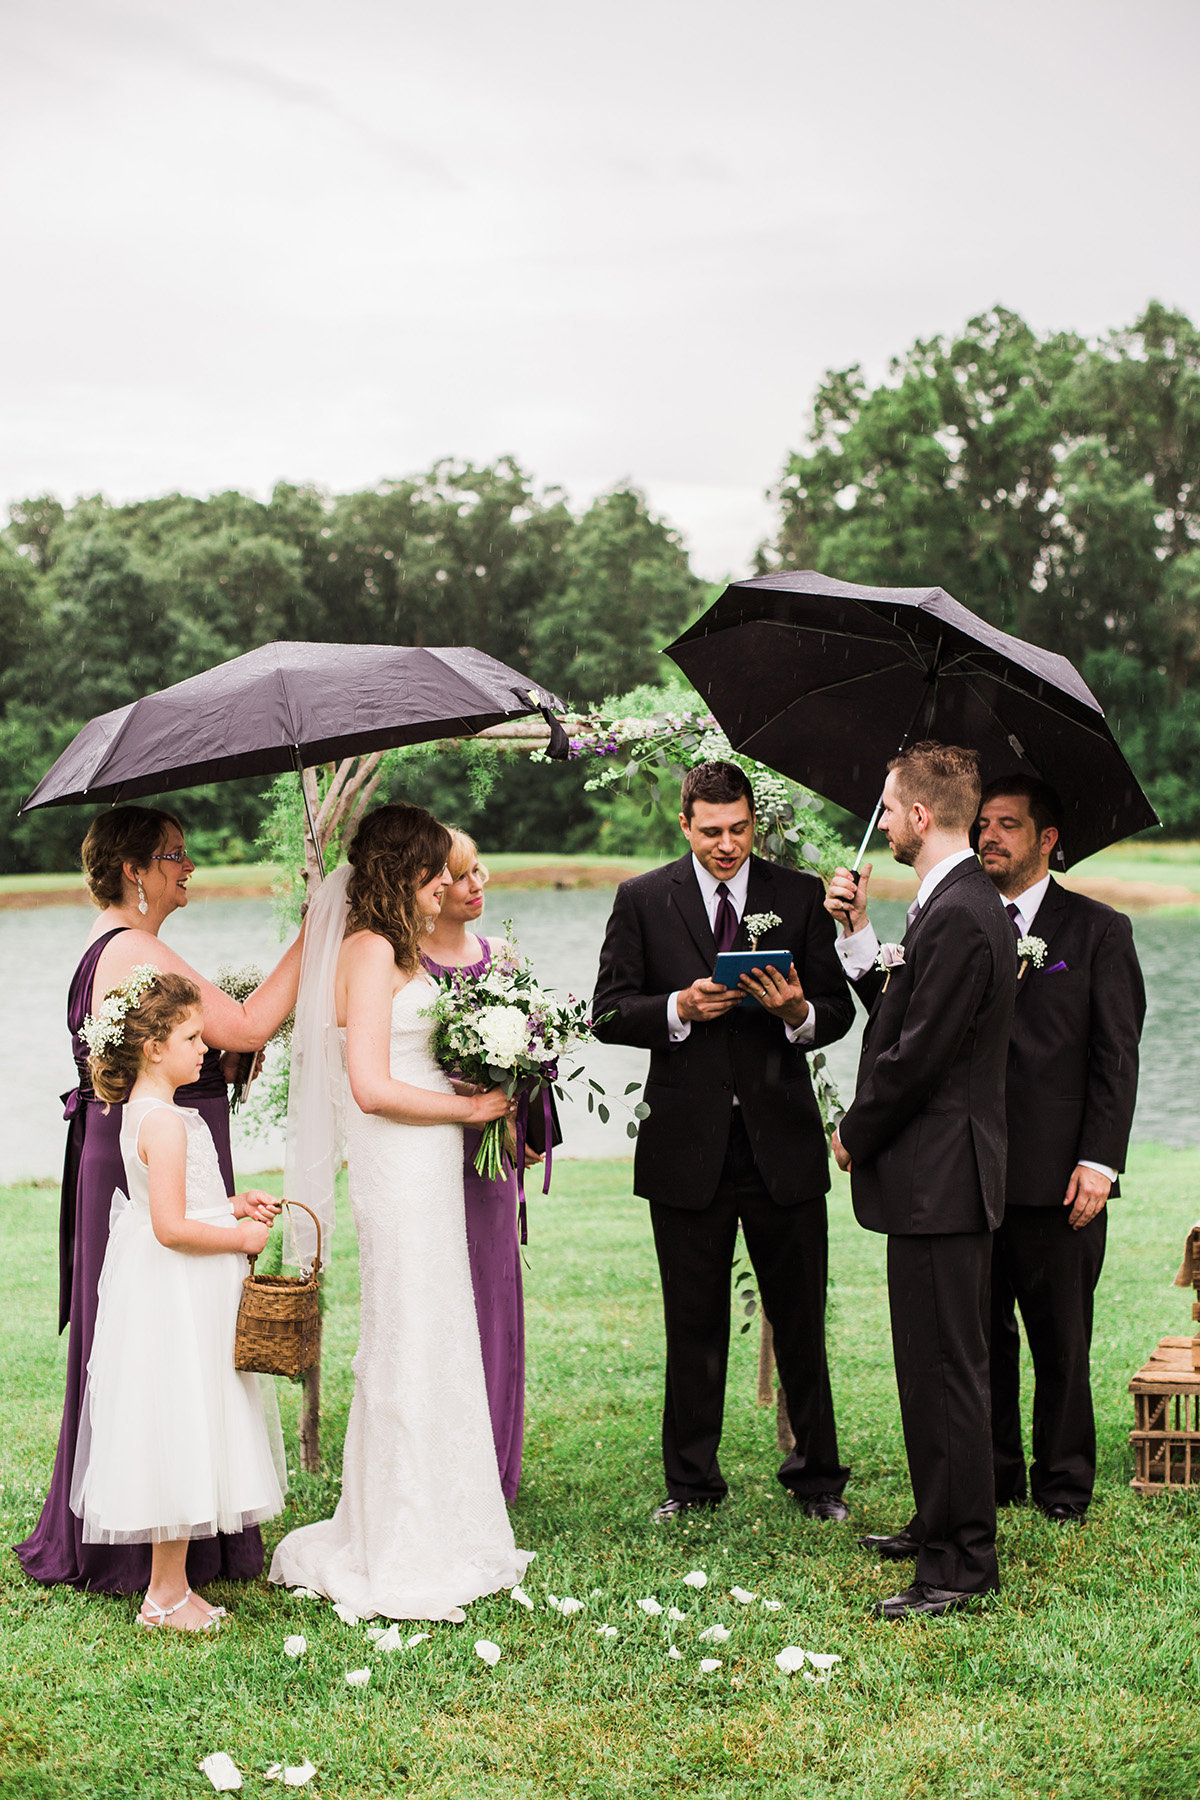 rainy-wedding-photos